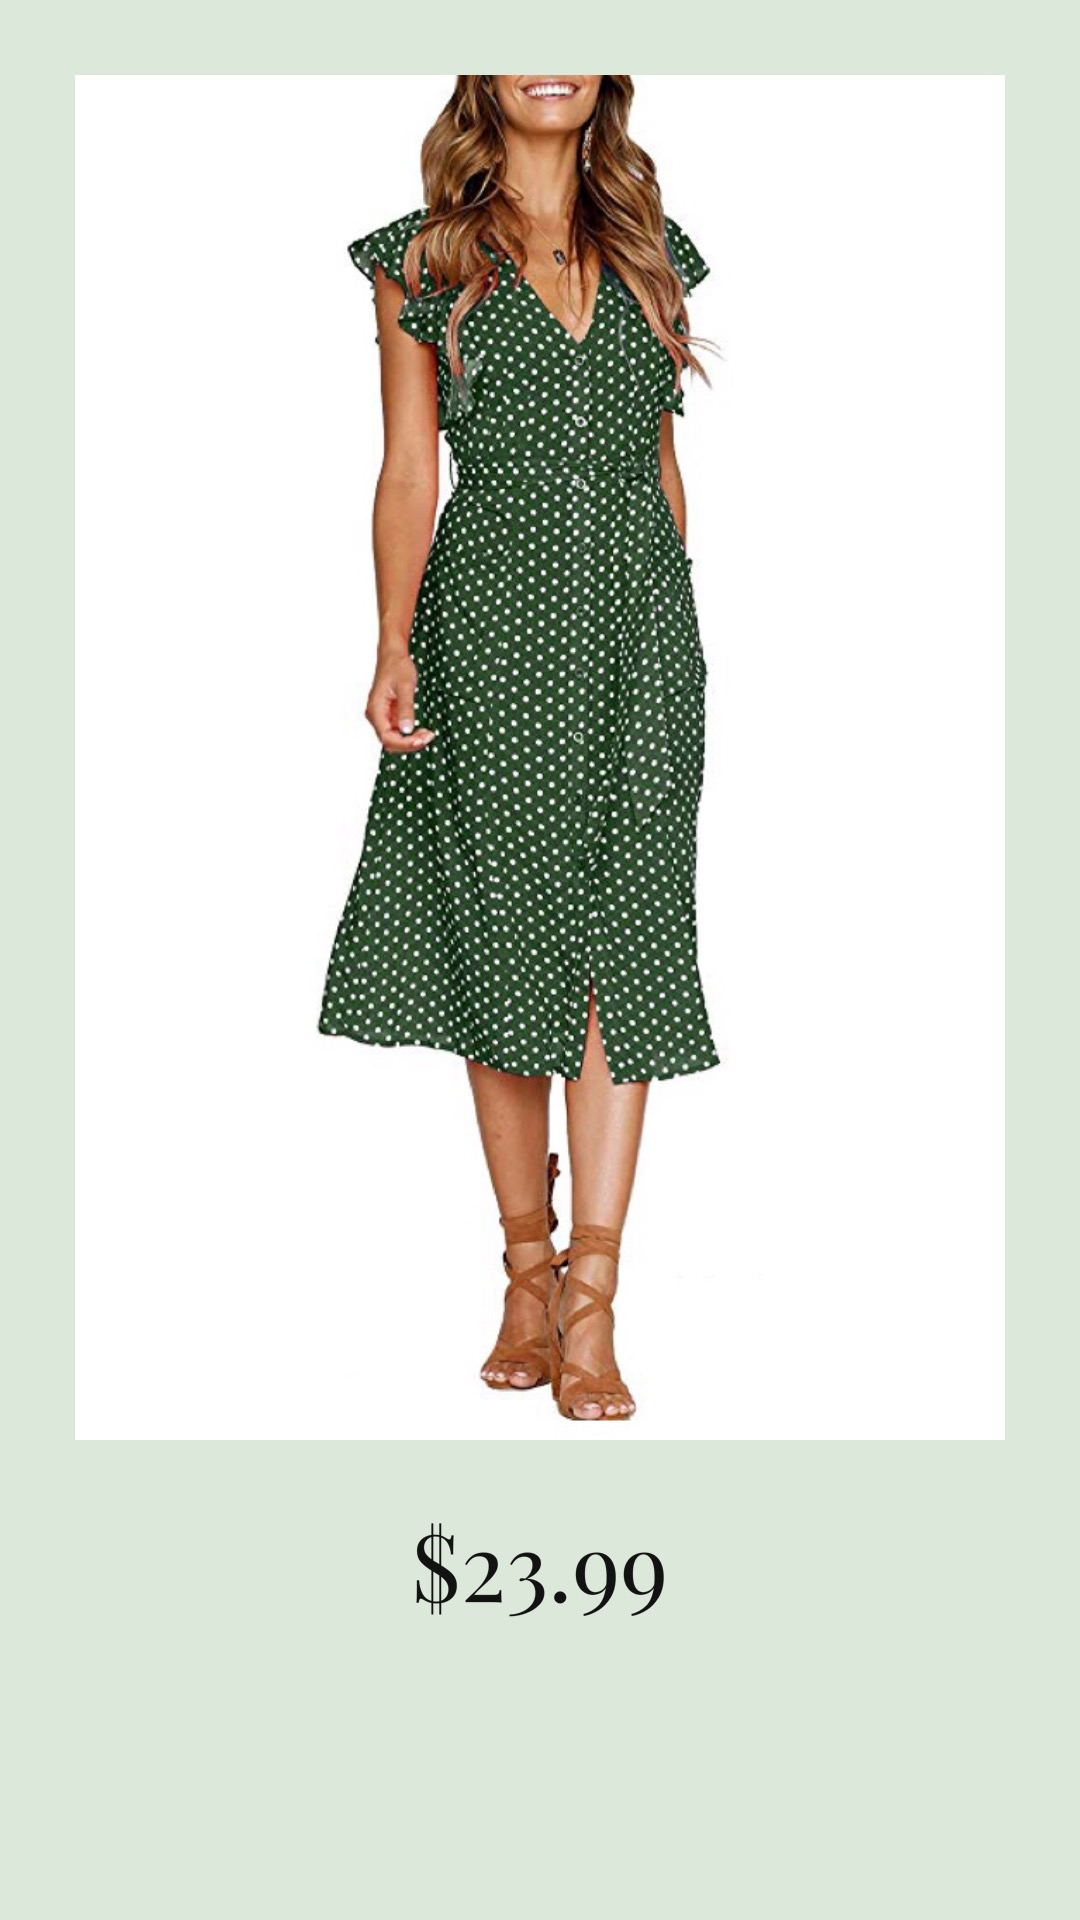 Polka Dot Green Dress